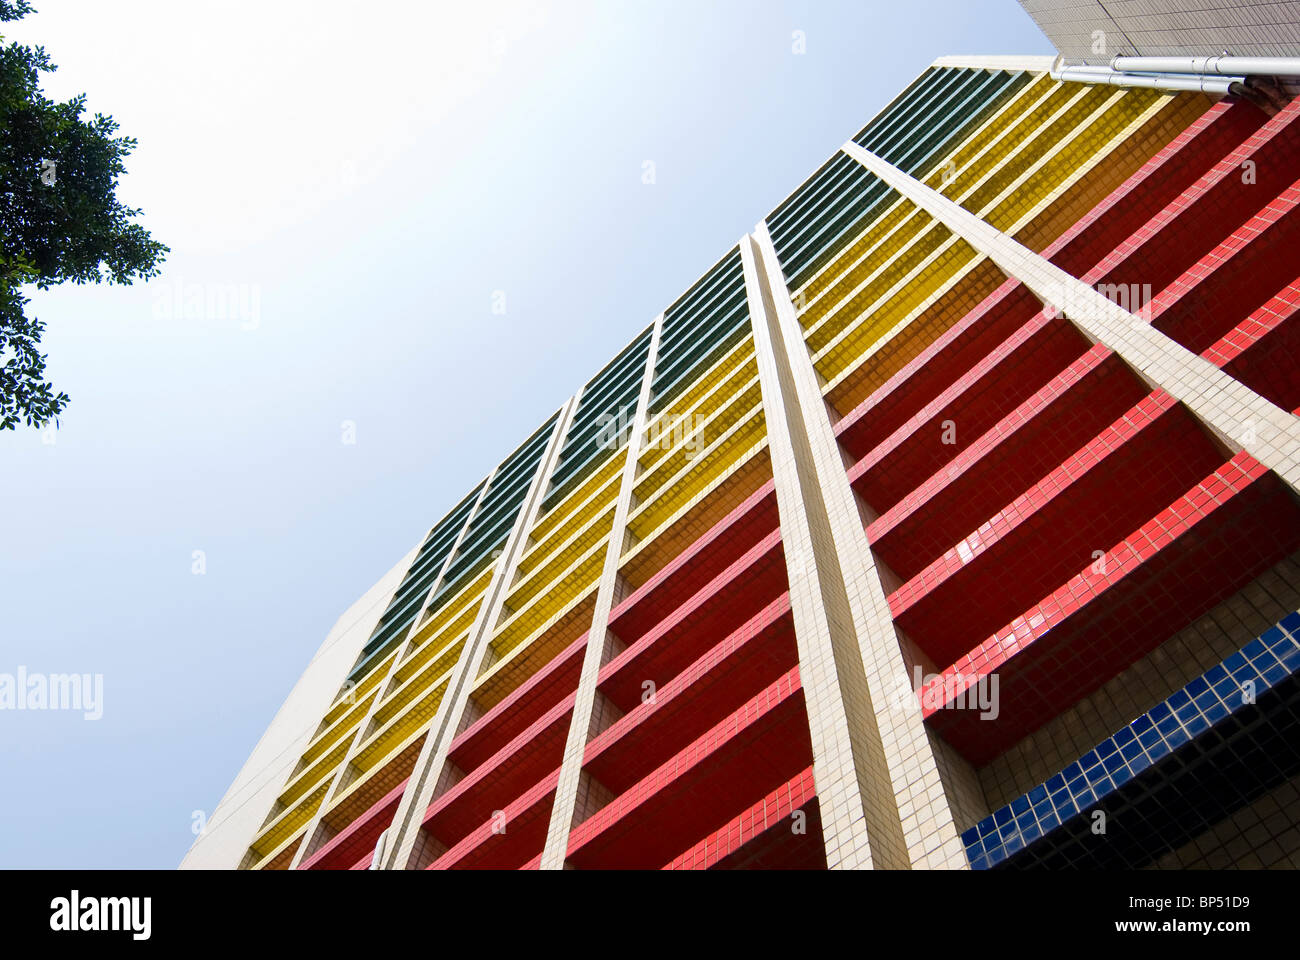 Colorful modern building extend to blue sky. - Stock Image